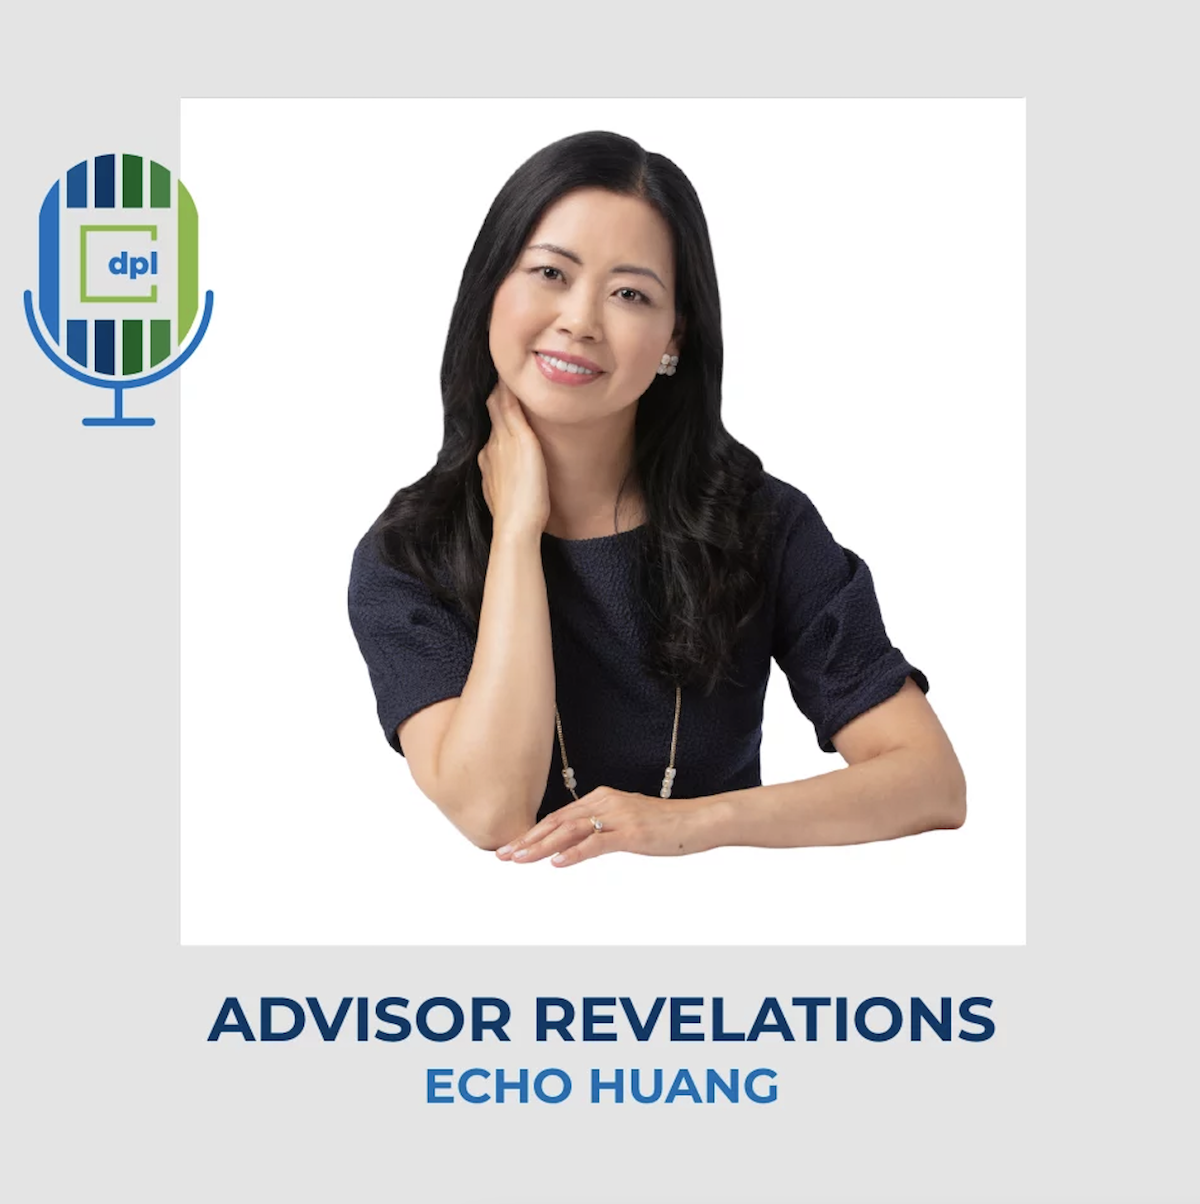 Echo Huang was Recently Featured on the DPL Podcast